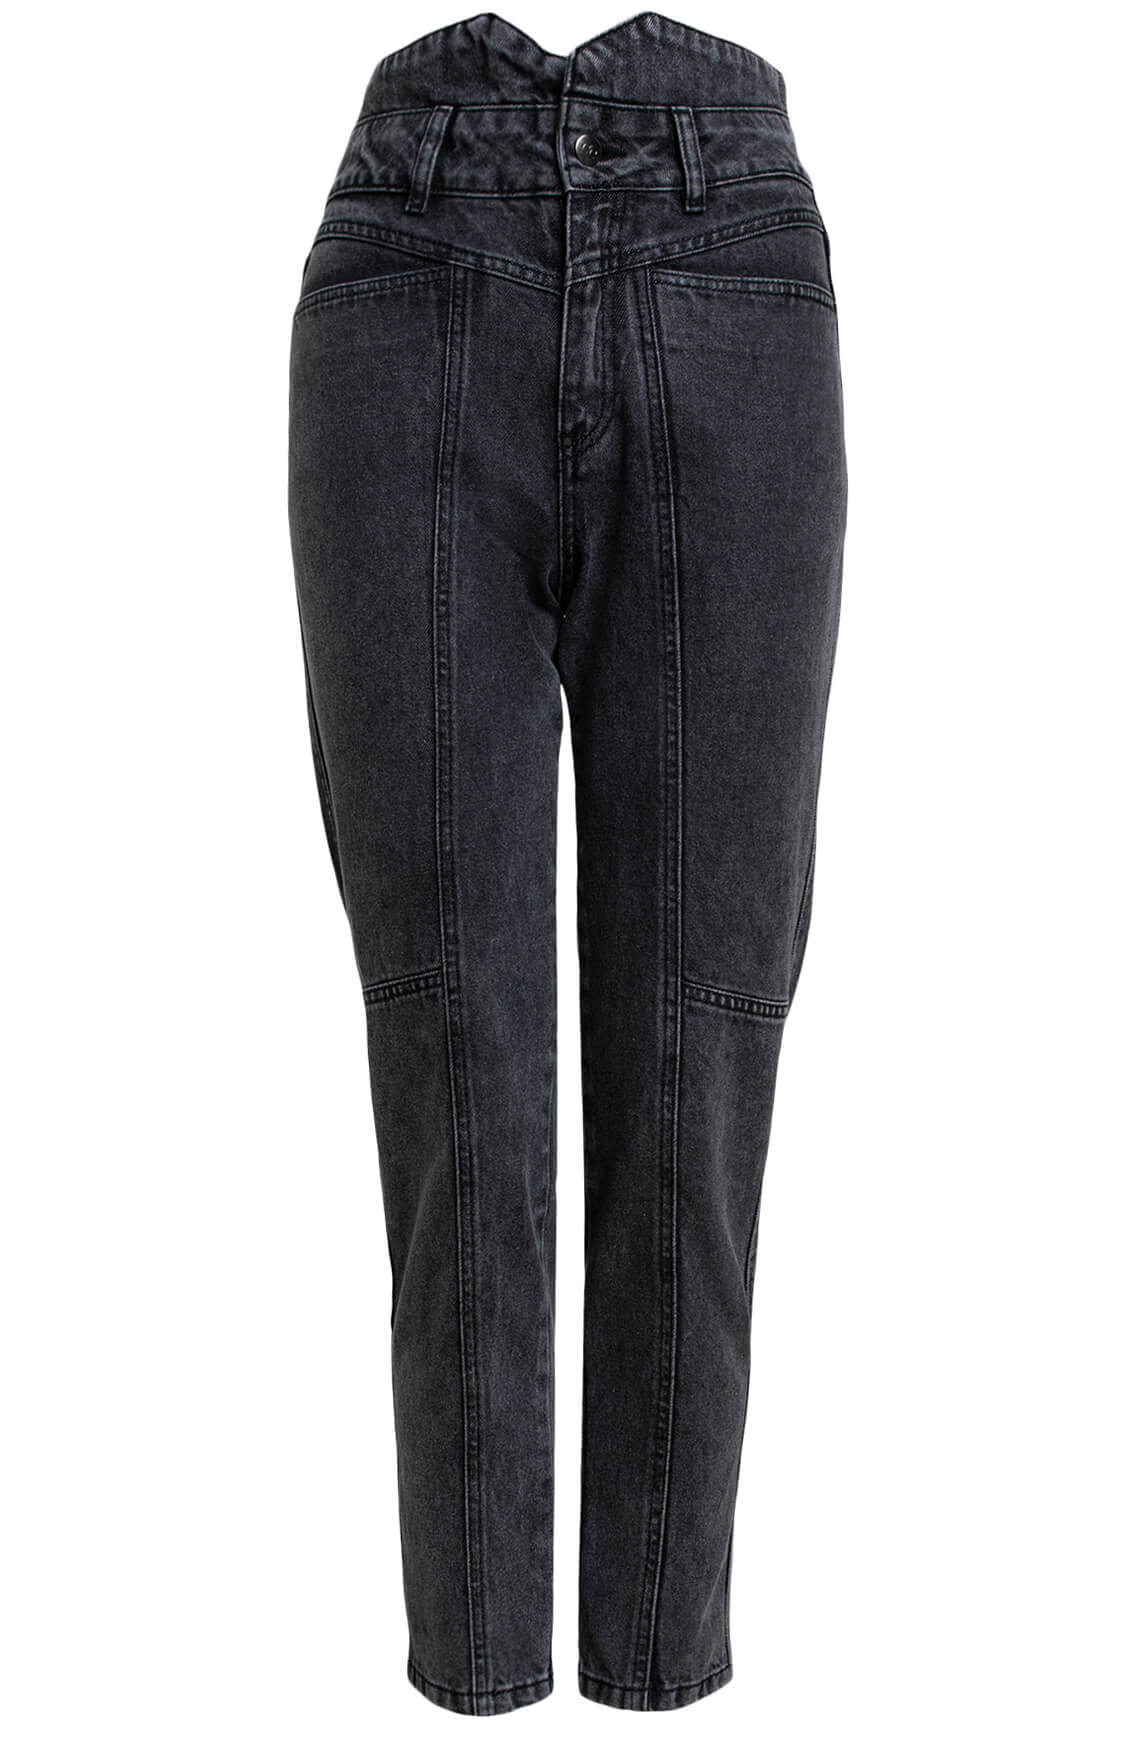 Co Couture Dames Zora high-waist jeans Grijs